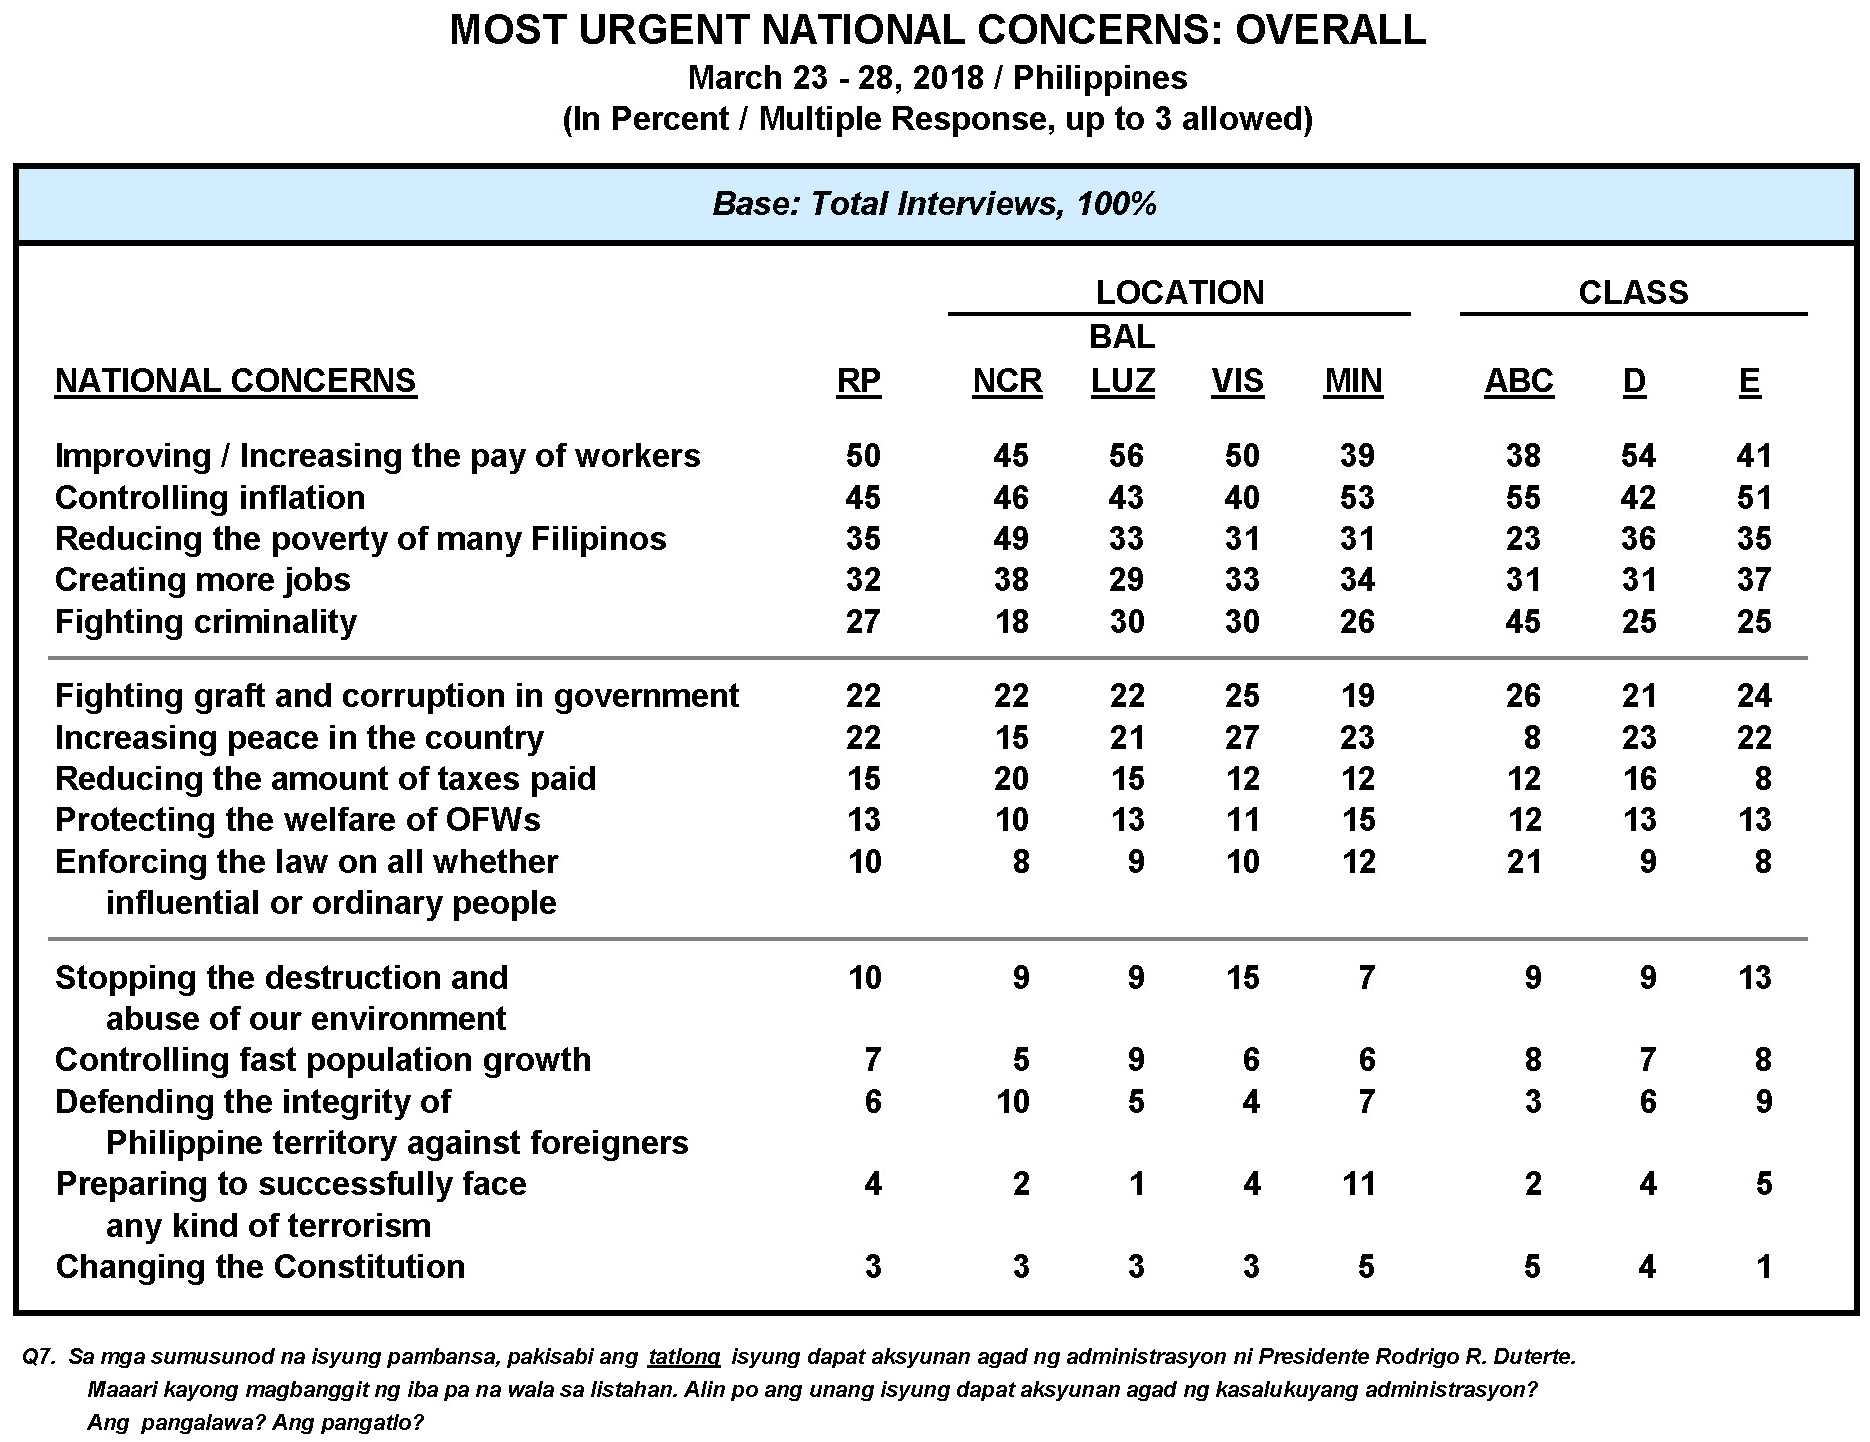 March 2018 Nationwide Survey on Urgent National Concerns and National Administration Performance Ratings on Selected Issues